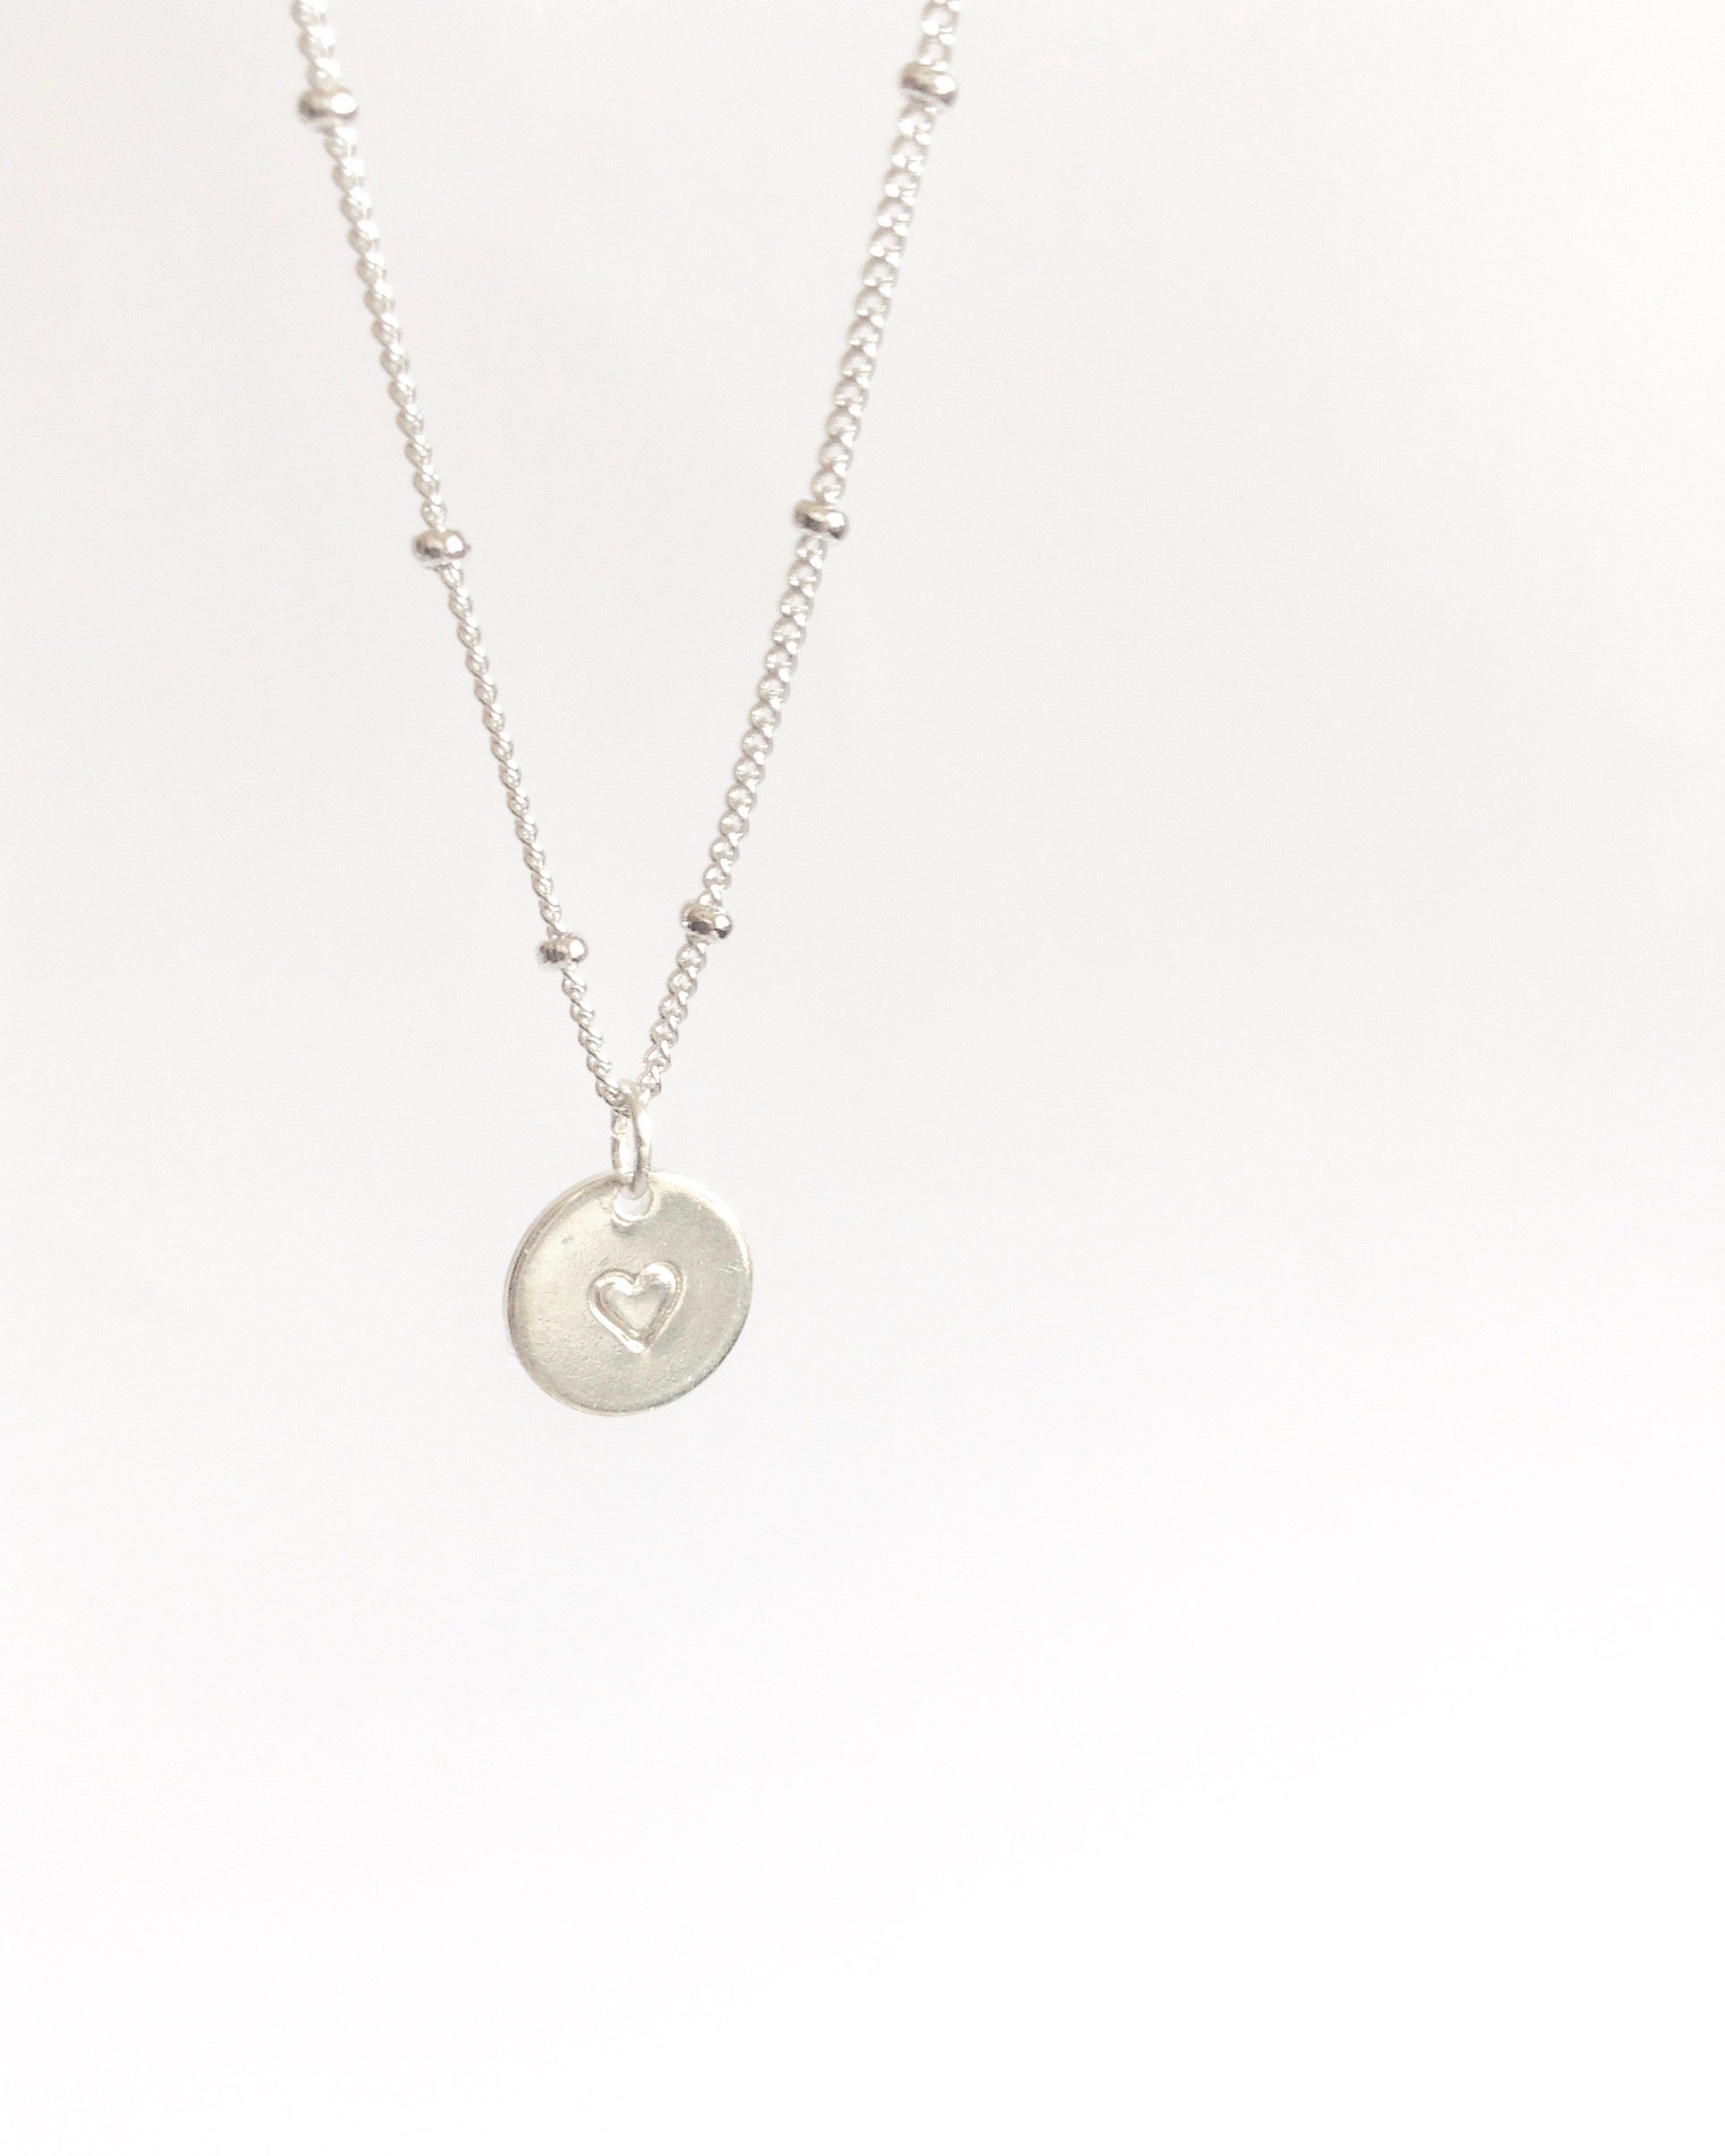 Tiny Heart Necklace Affordable Dainty Jewelry  | IB Jewelry